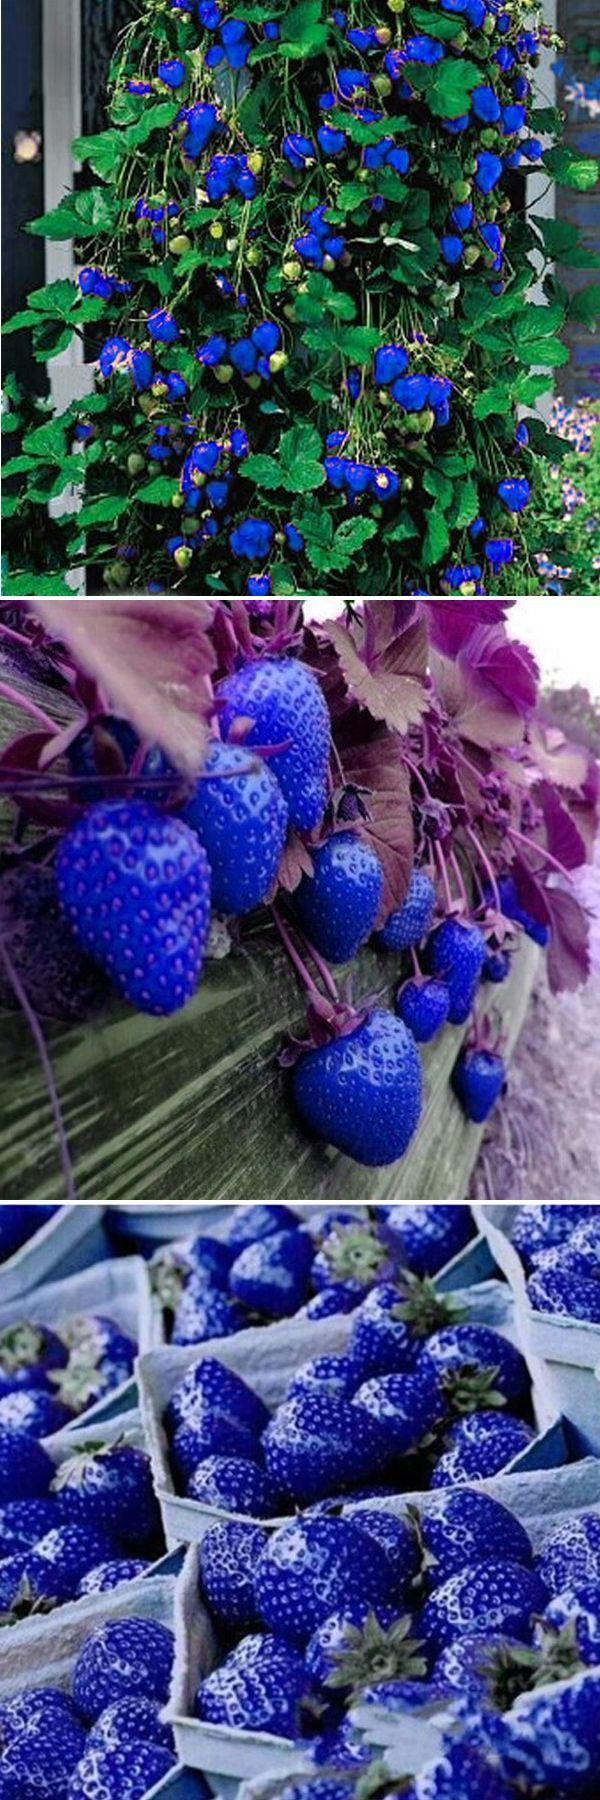 US$2.99  500Pcs Blue Strawberry Rare Fruit Vegetable Seeds Bonsai Edible Garden …